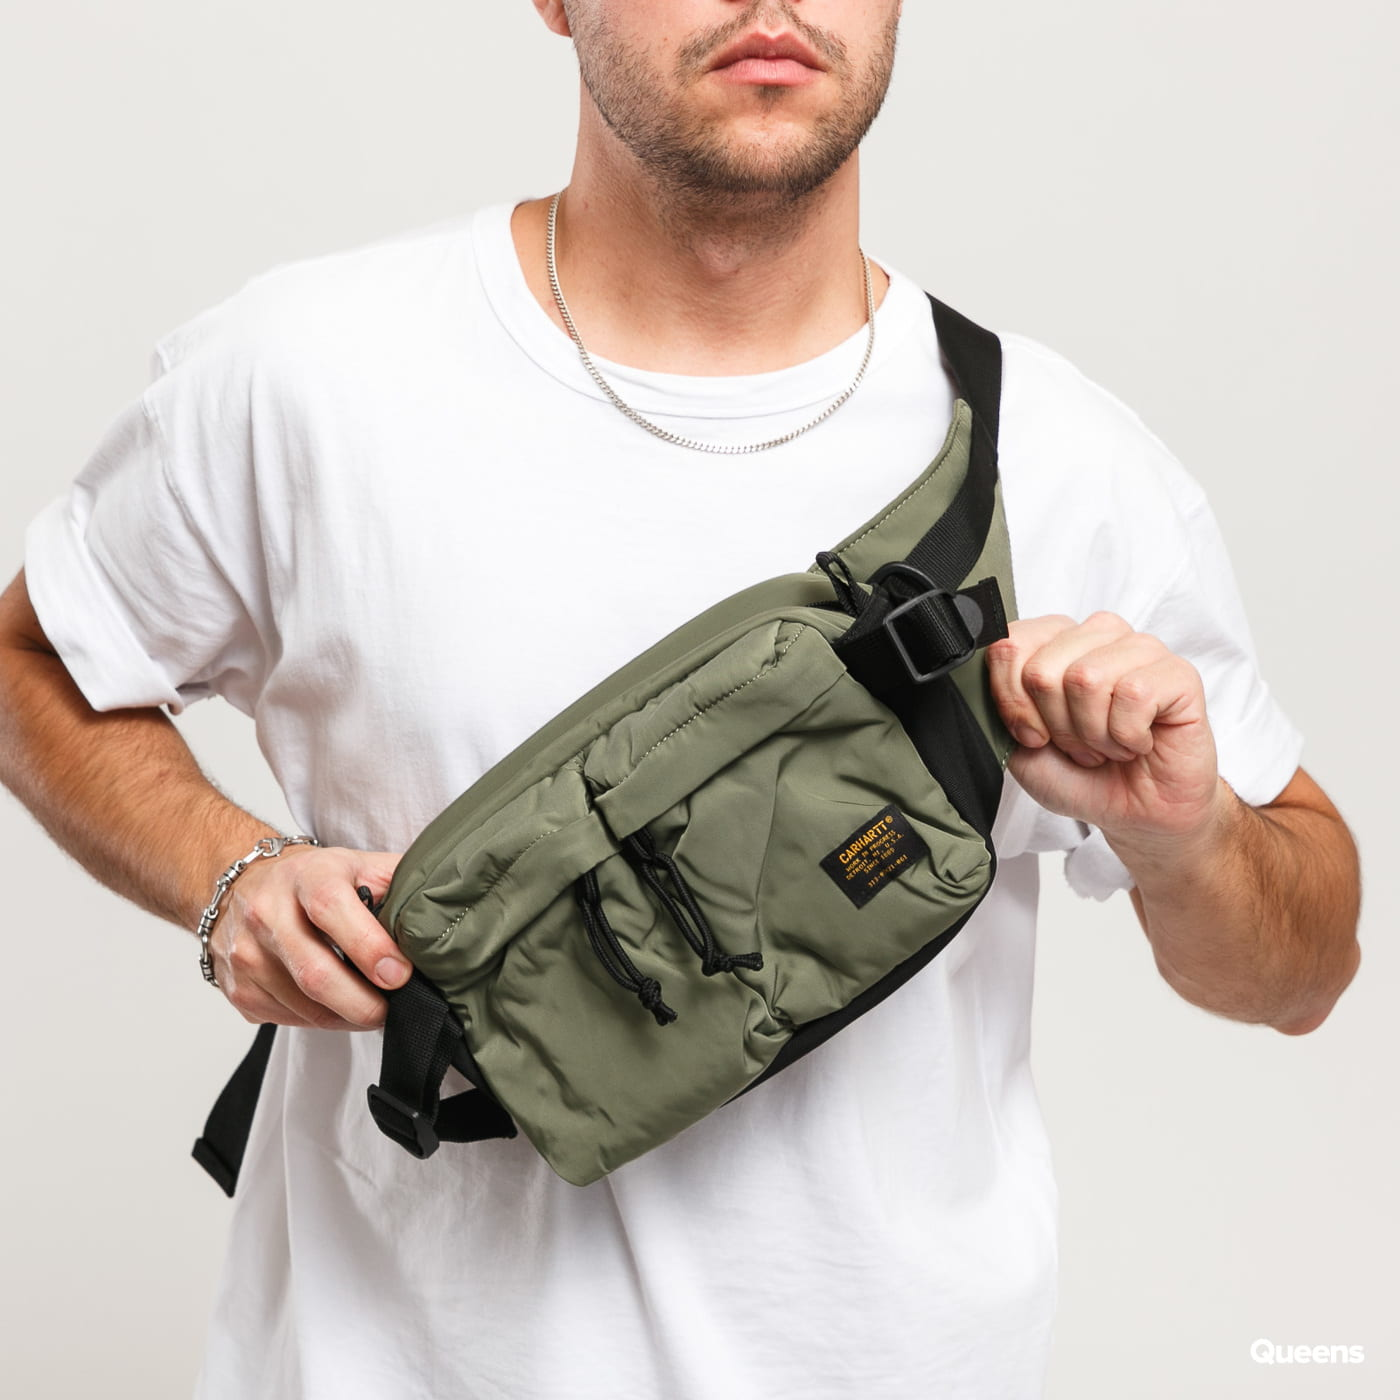 Carhartt WIP Military Hip Bag olive / black